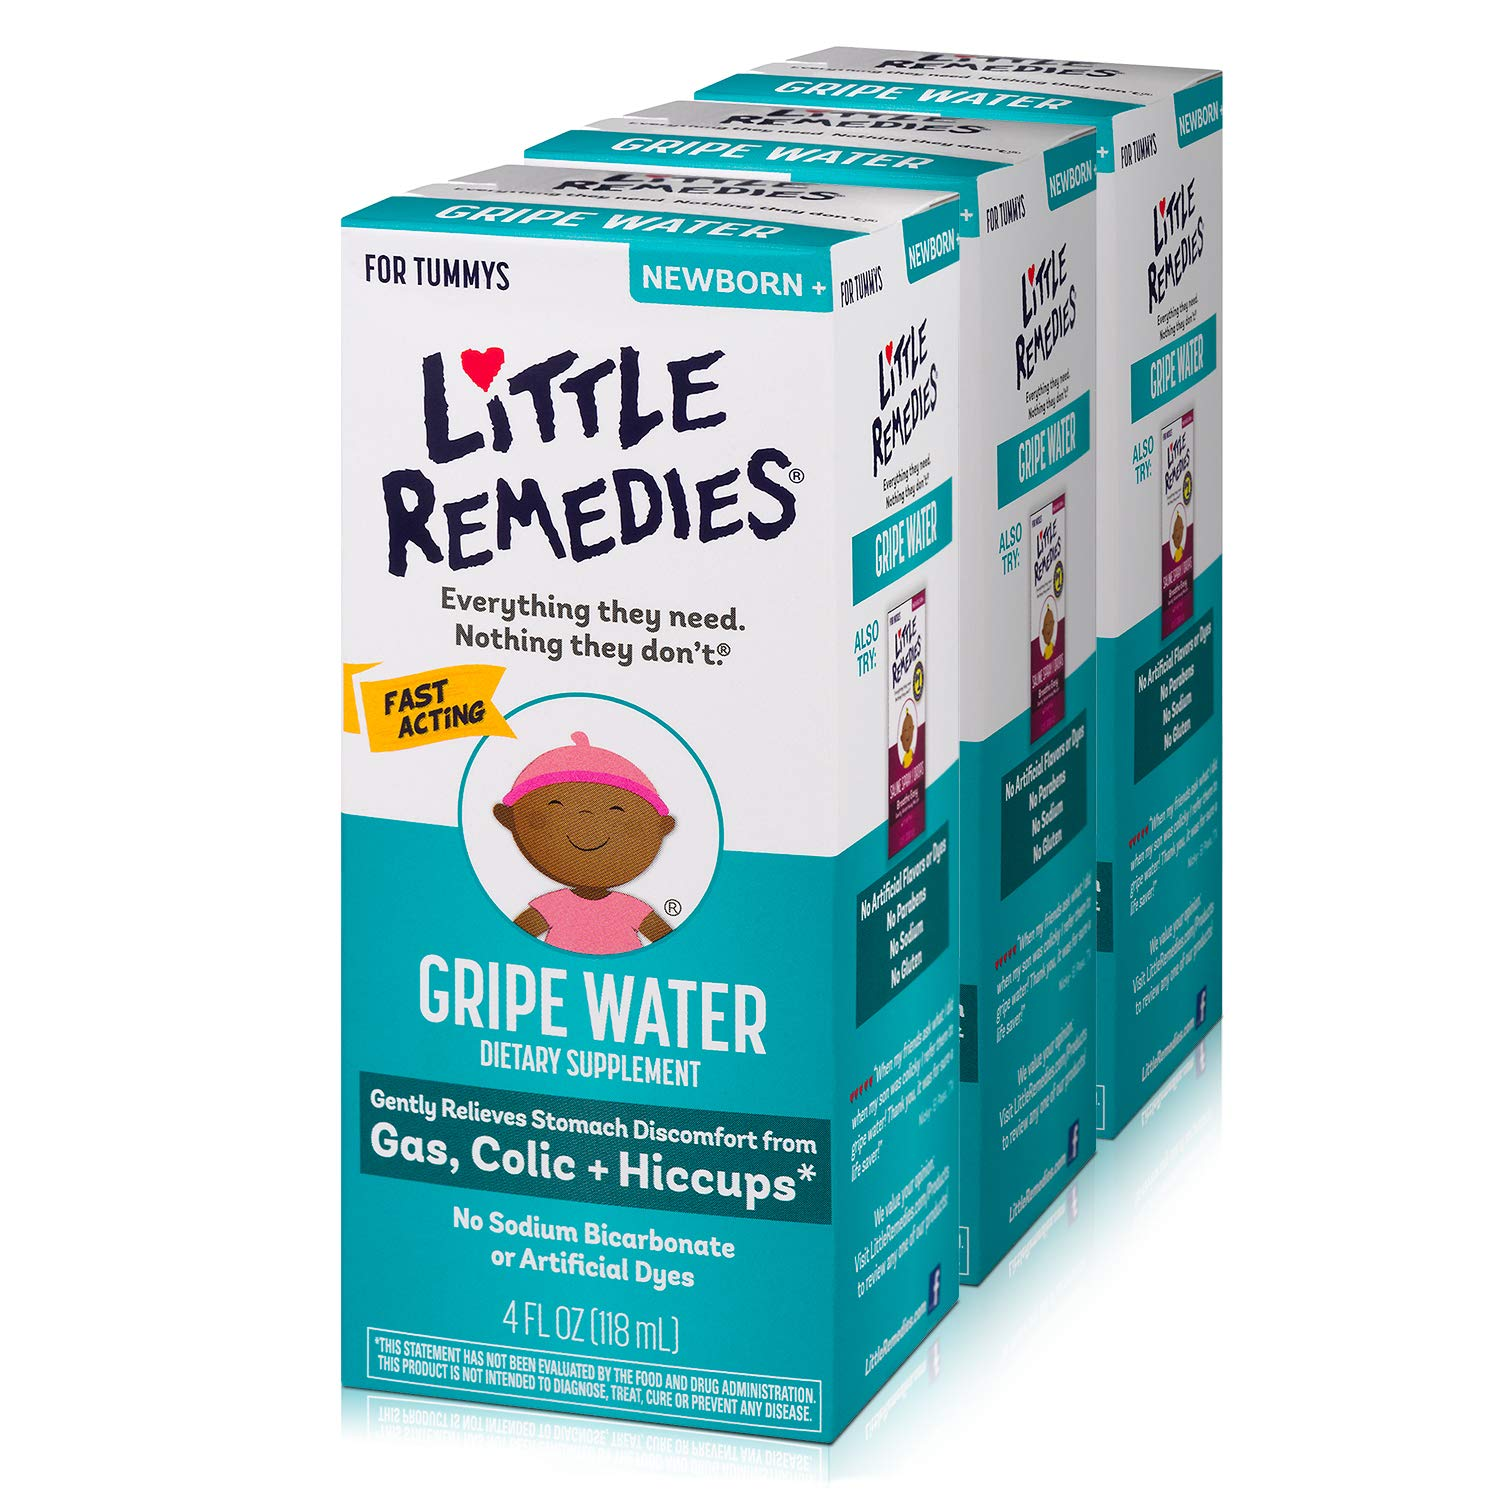 Little Remedies Gripe Water, Colic & Gas Relief, Safe for Newborns, 4 fl oz, 3 Pack